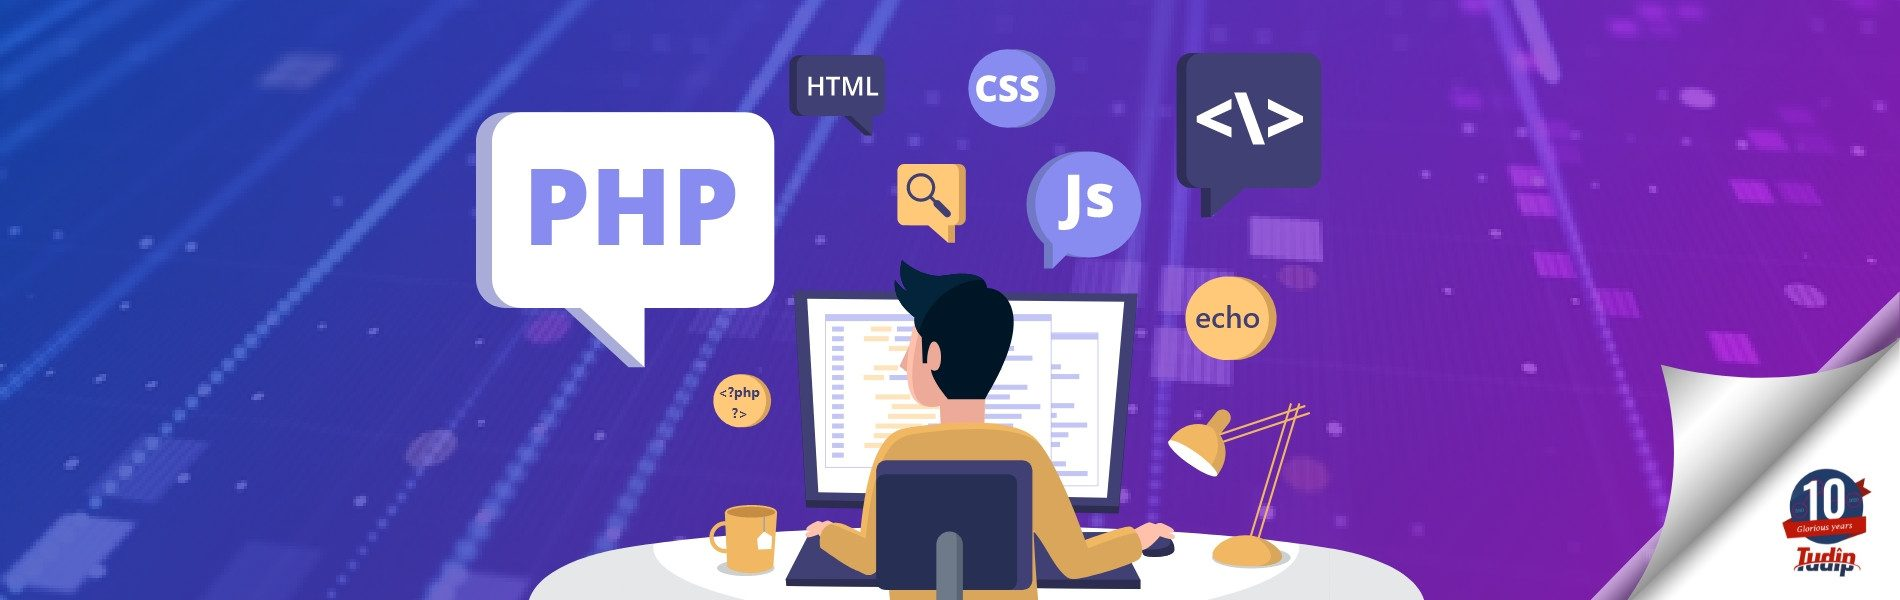 What_are_the_new_features_in_PHP 7.4